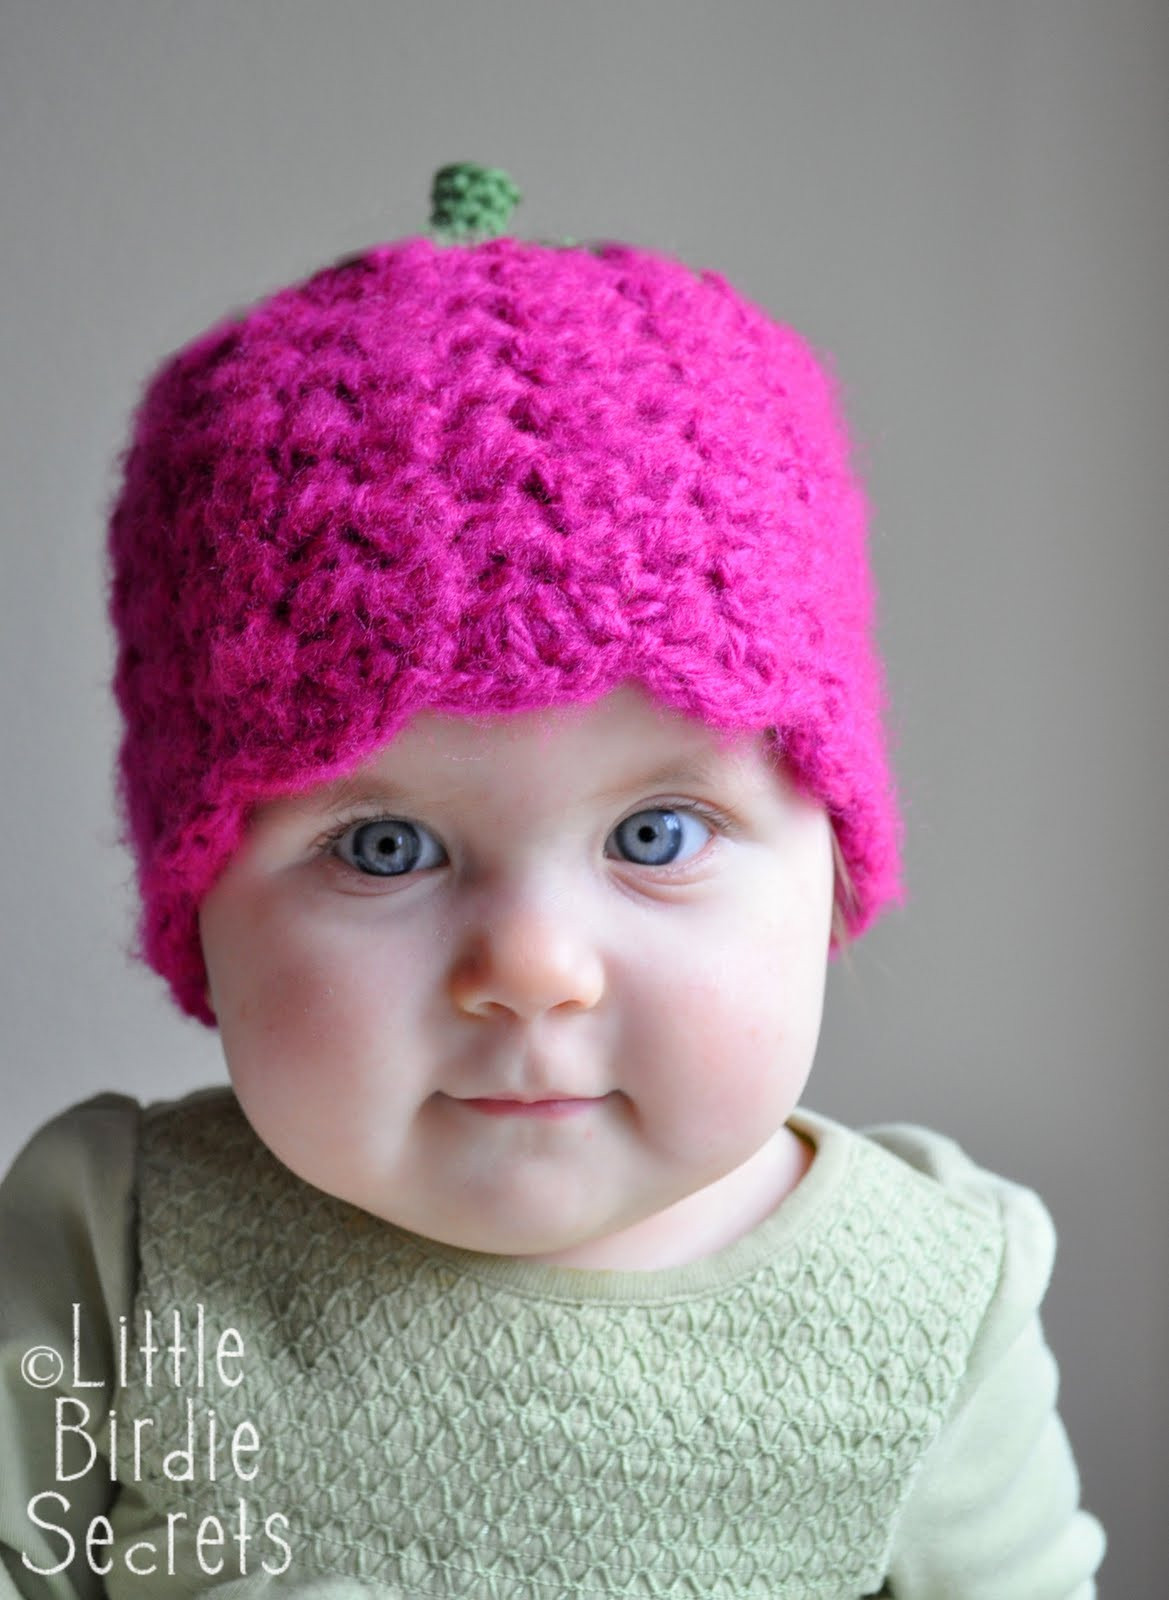 Baby Crochet Patterns Awesome Raspberry or Strawberry Free Crochet Pattern and A Of Fresh 41 Ideas Baby Crochet Patterns